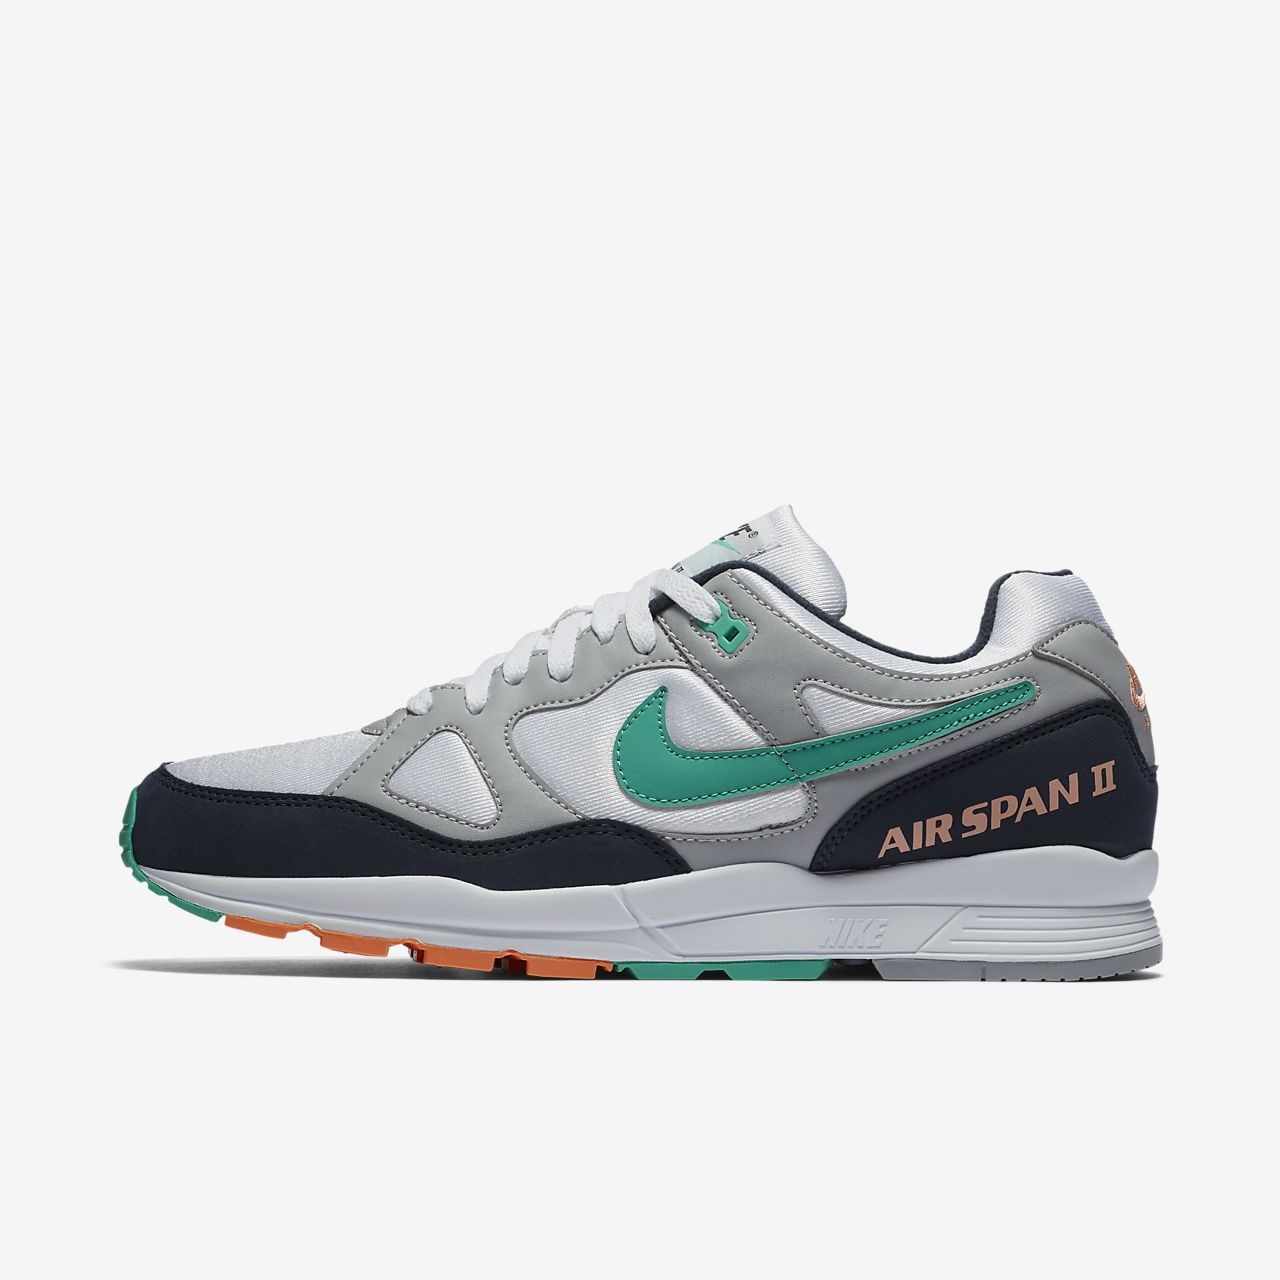 Nike Span 2 UK MI Air UK 2 9 DS 14f147